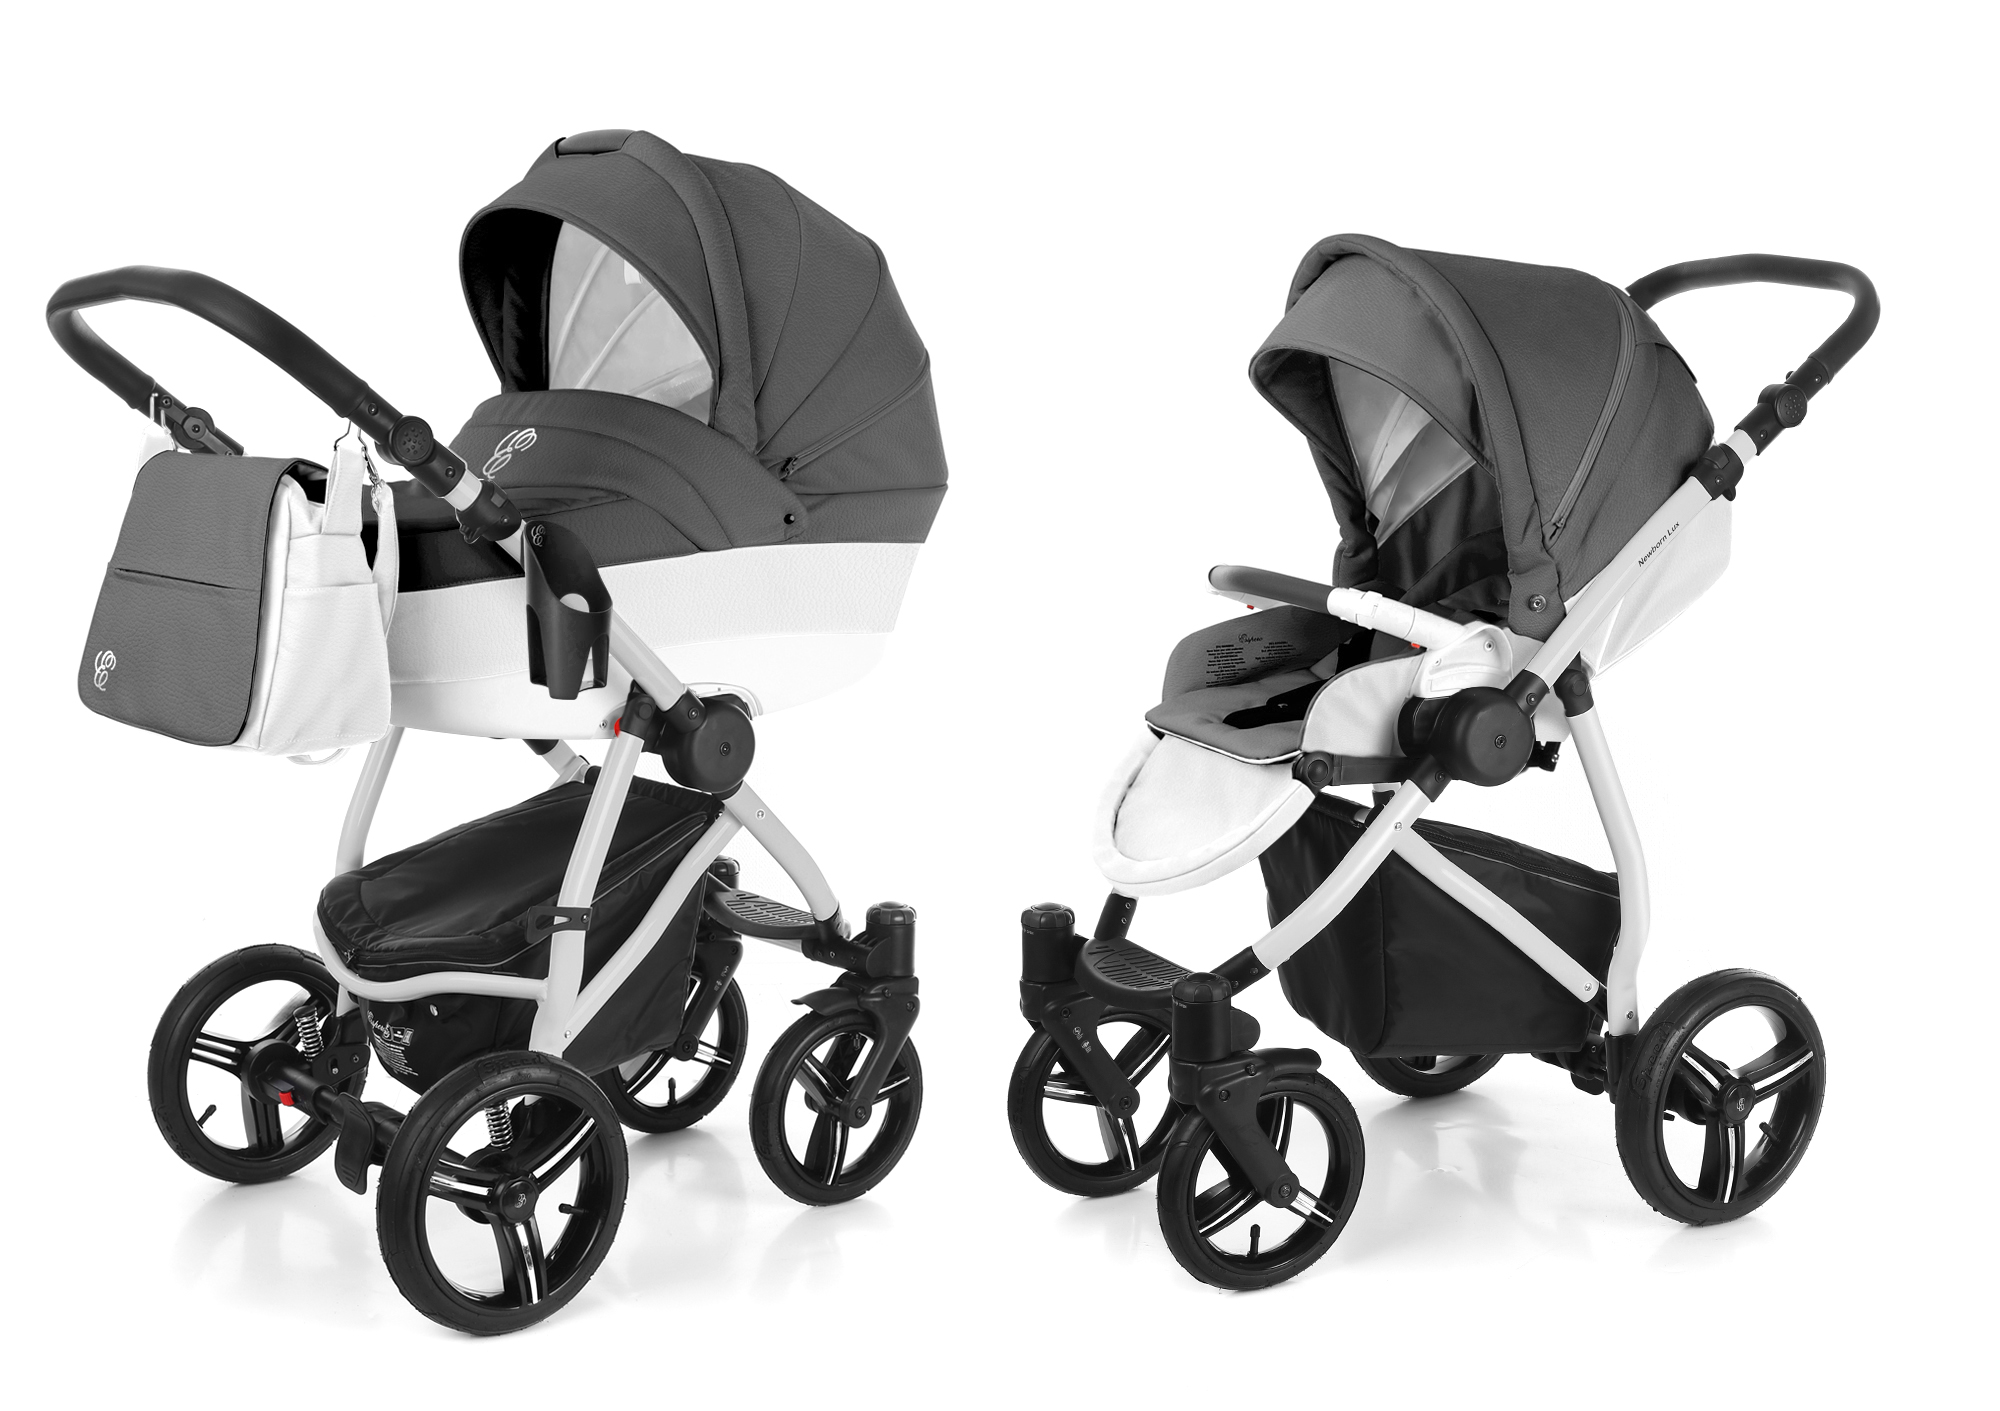 Коляска 2 в 1 Esspero Grand Newborn Lux (шасси Grey) Grafite leatherette